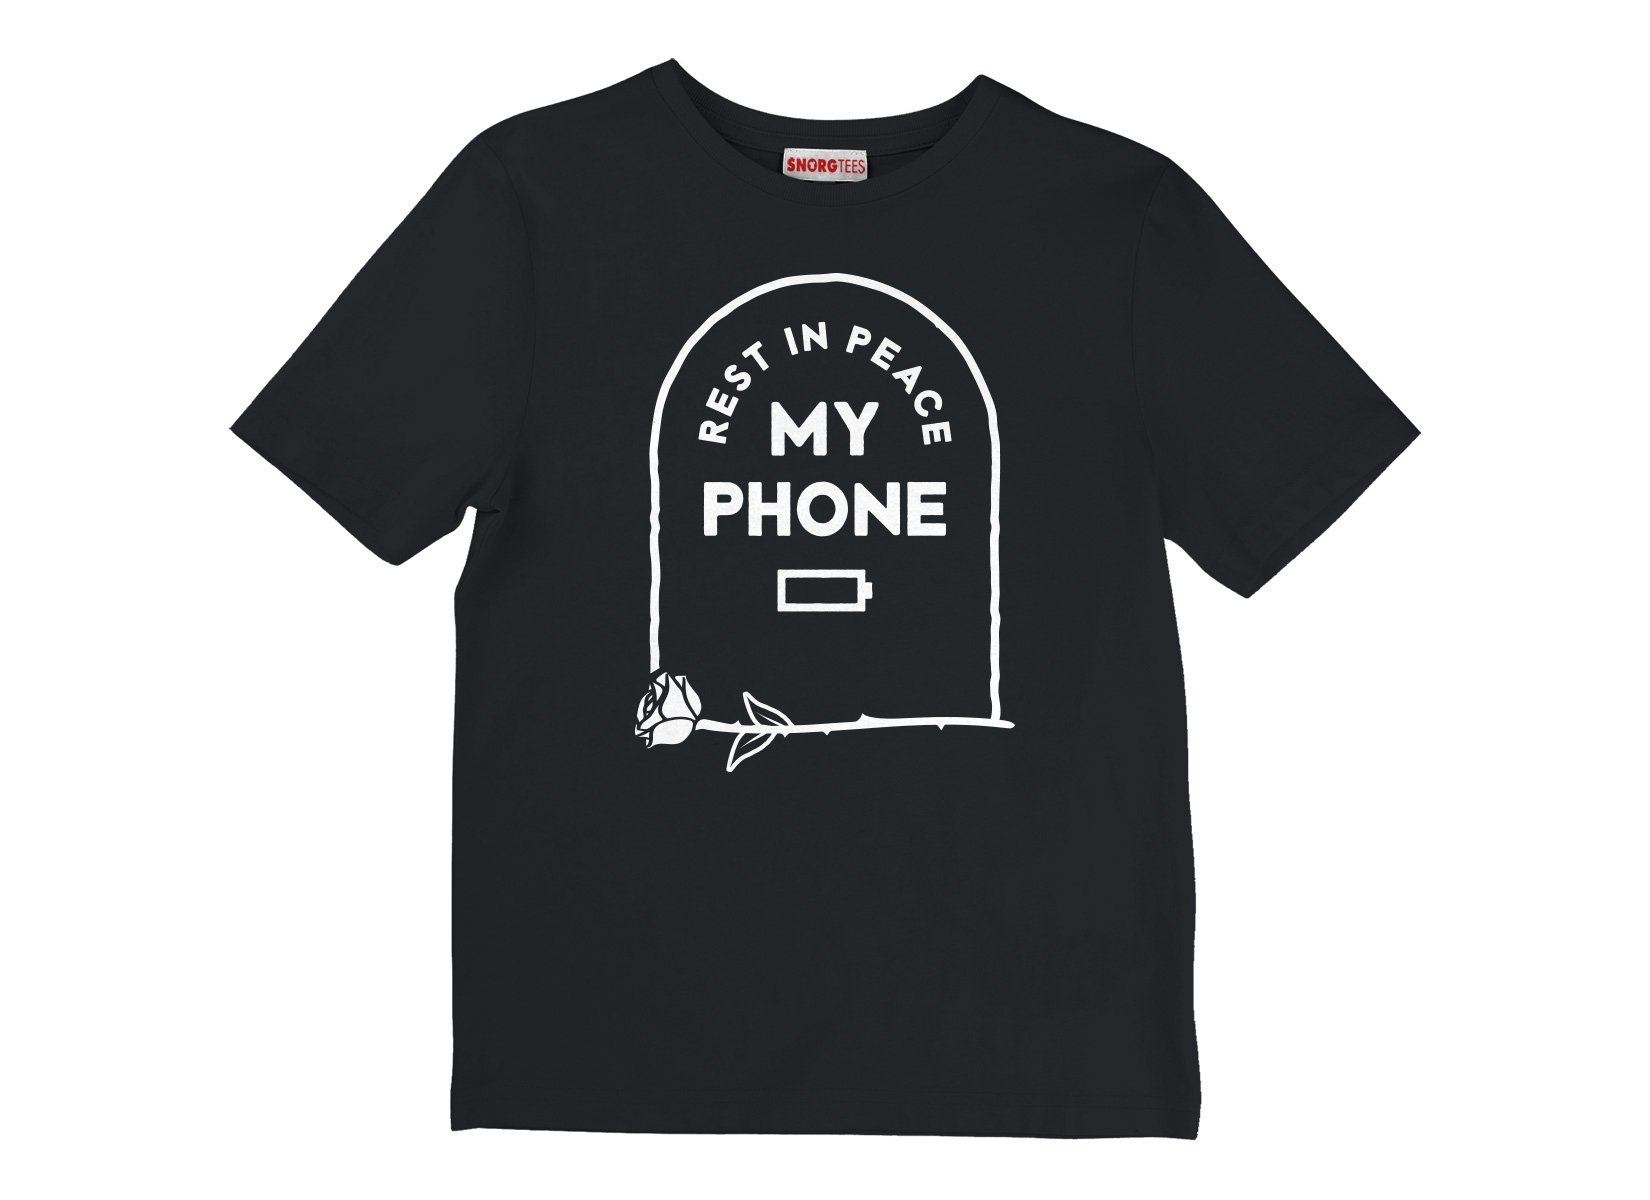 RIP My Phone on Kids T-Shirt